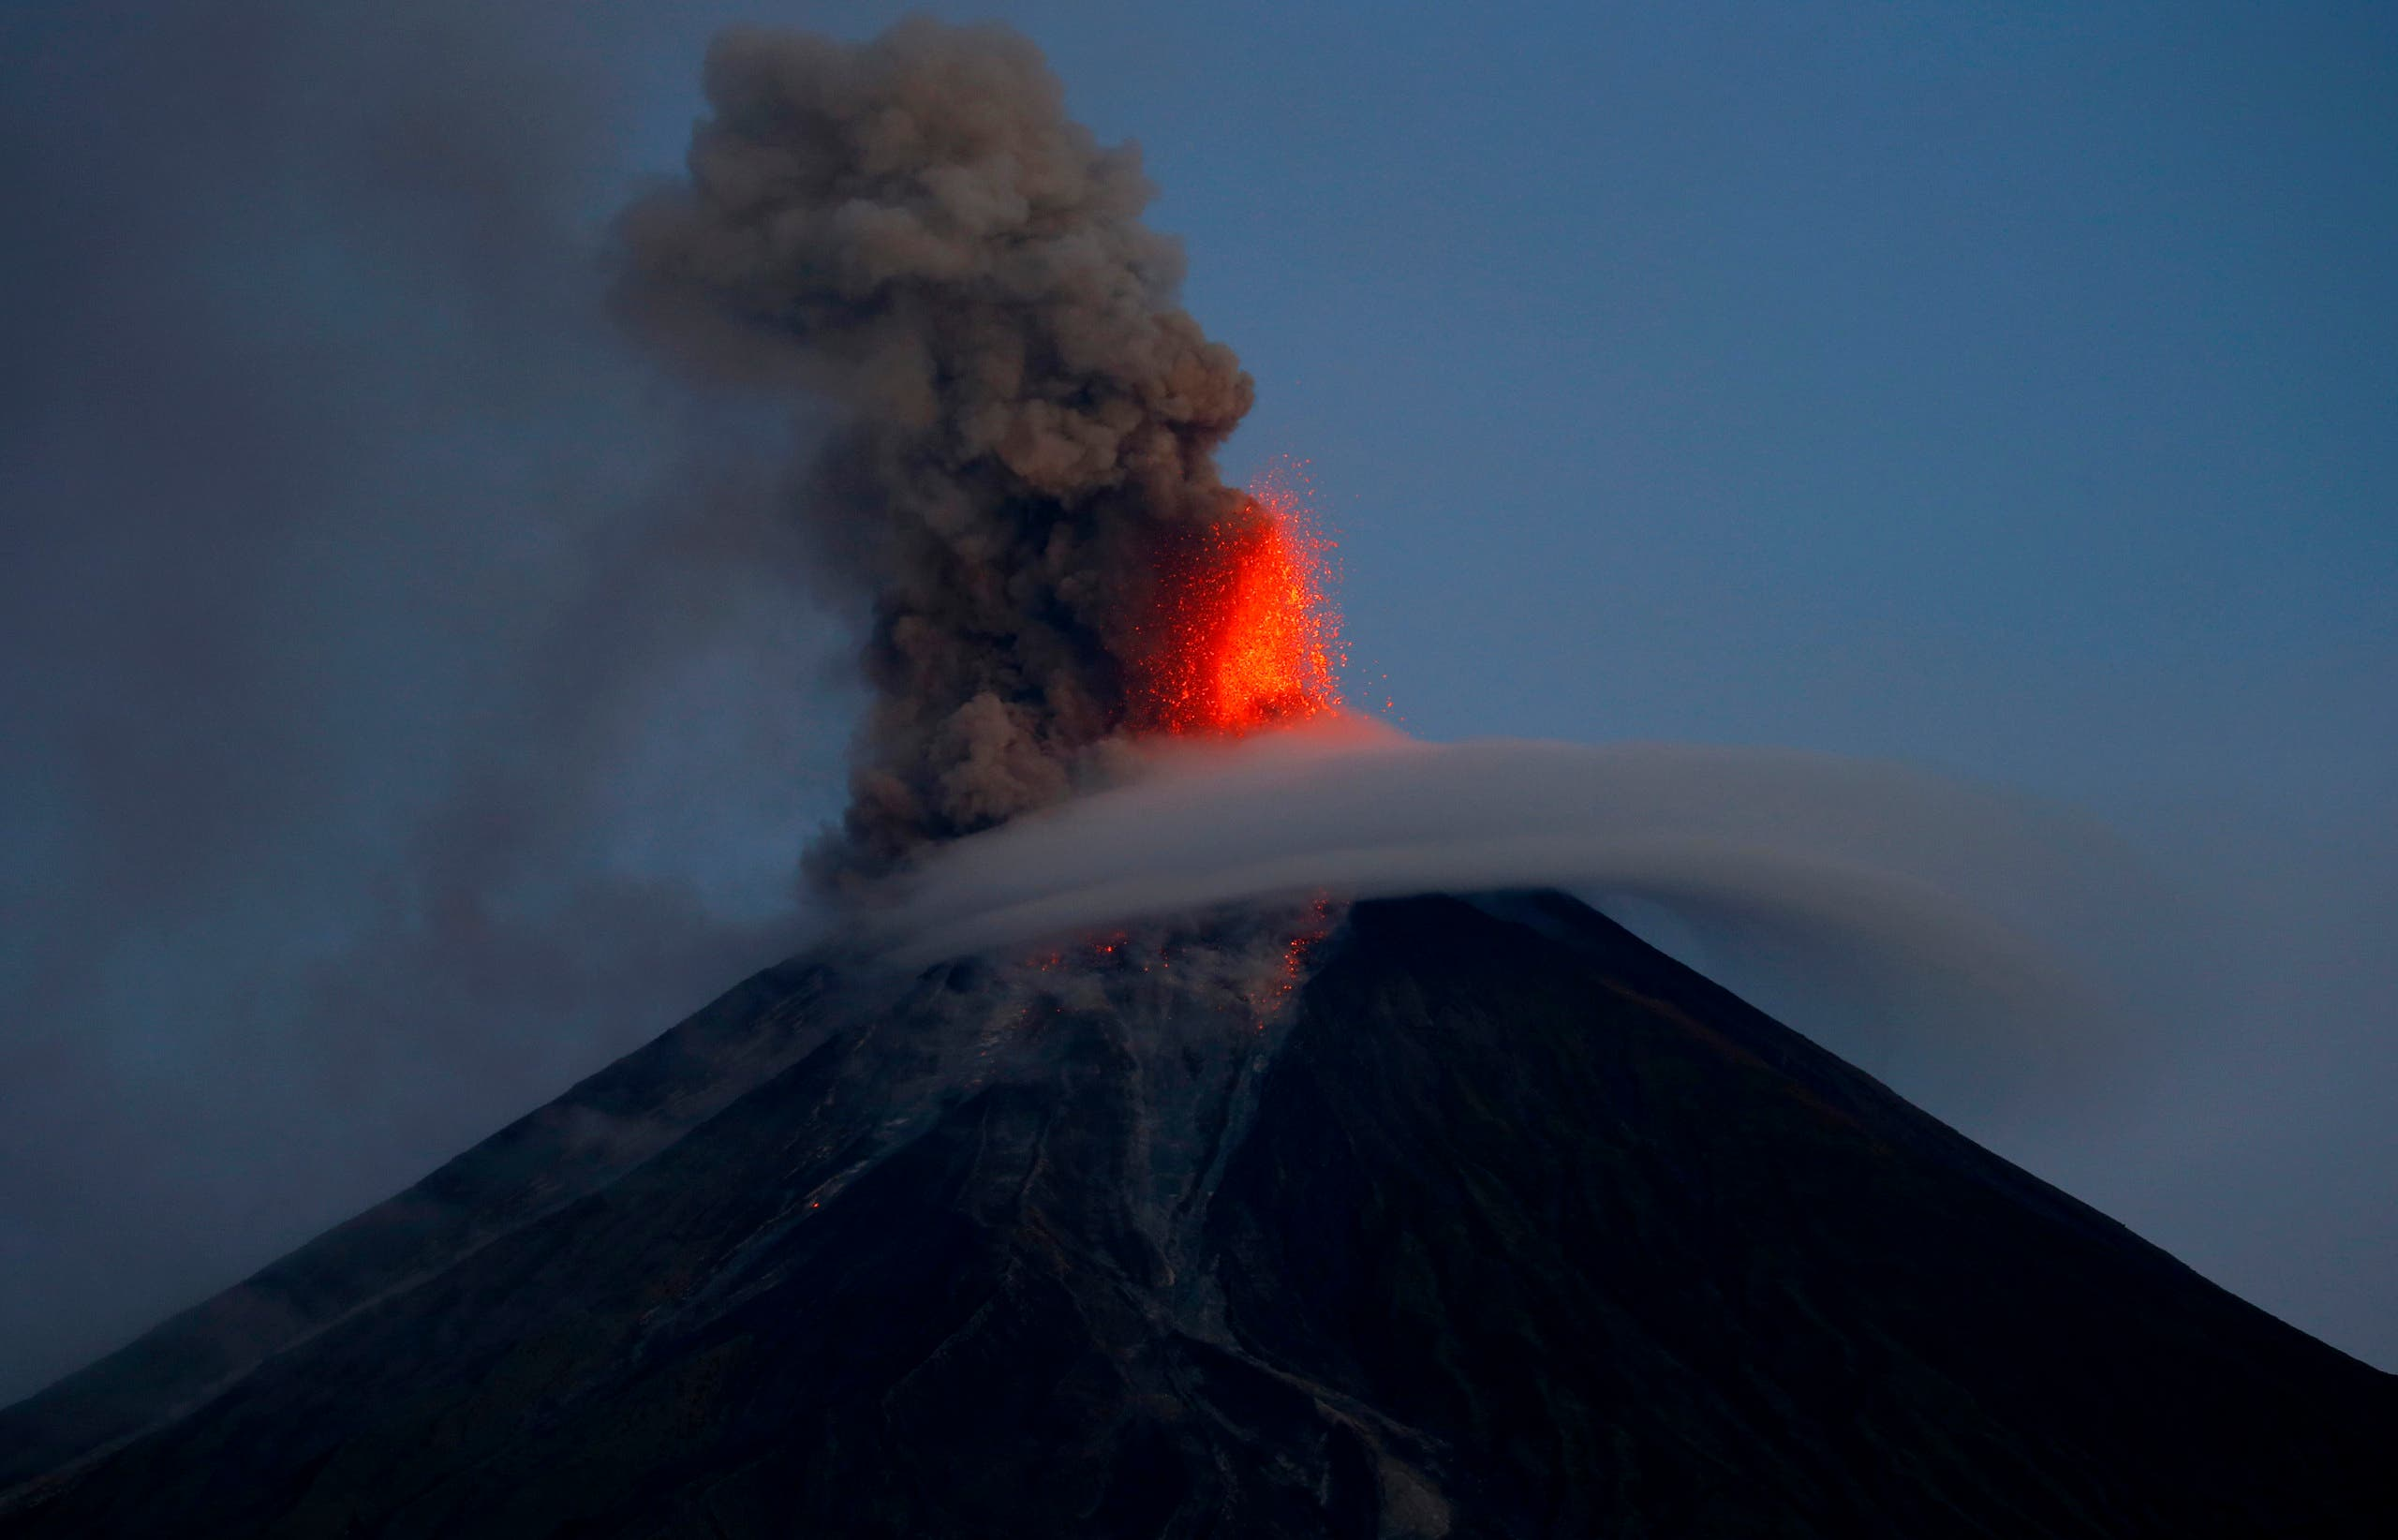 Mayon volcano spews red-hot lava in another eruption as seen from Legazpi city, Albay province, around 340 kilometers (200 miles) southeast of Manila, Philippines, Wednesday, Jan. 24, 2018.